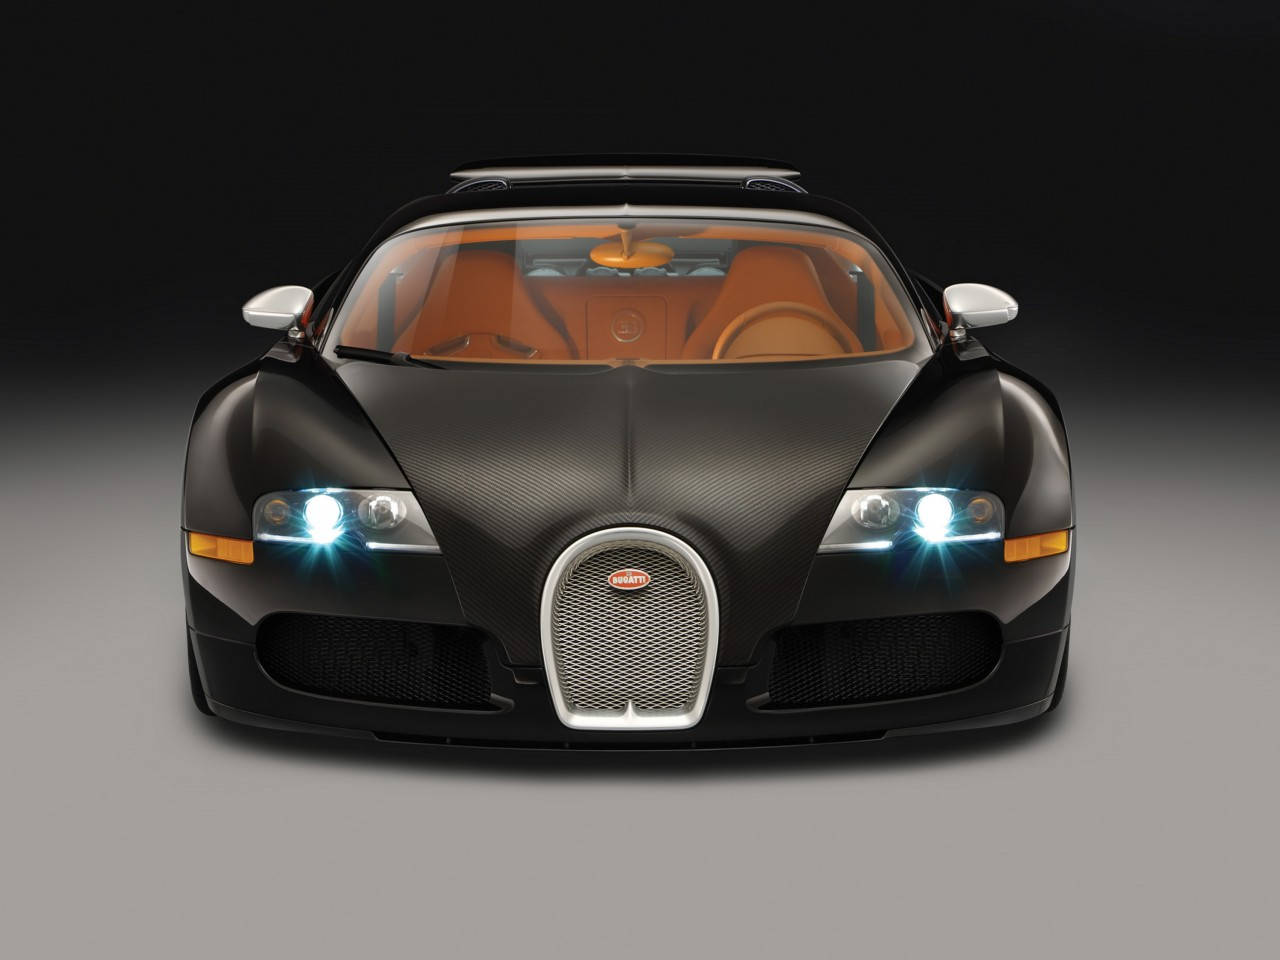 2008 bugatti veyron sang noir motor desktop. Black Bedroom Furniture Sets. Home Design Ideas